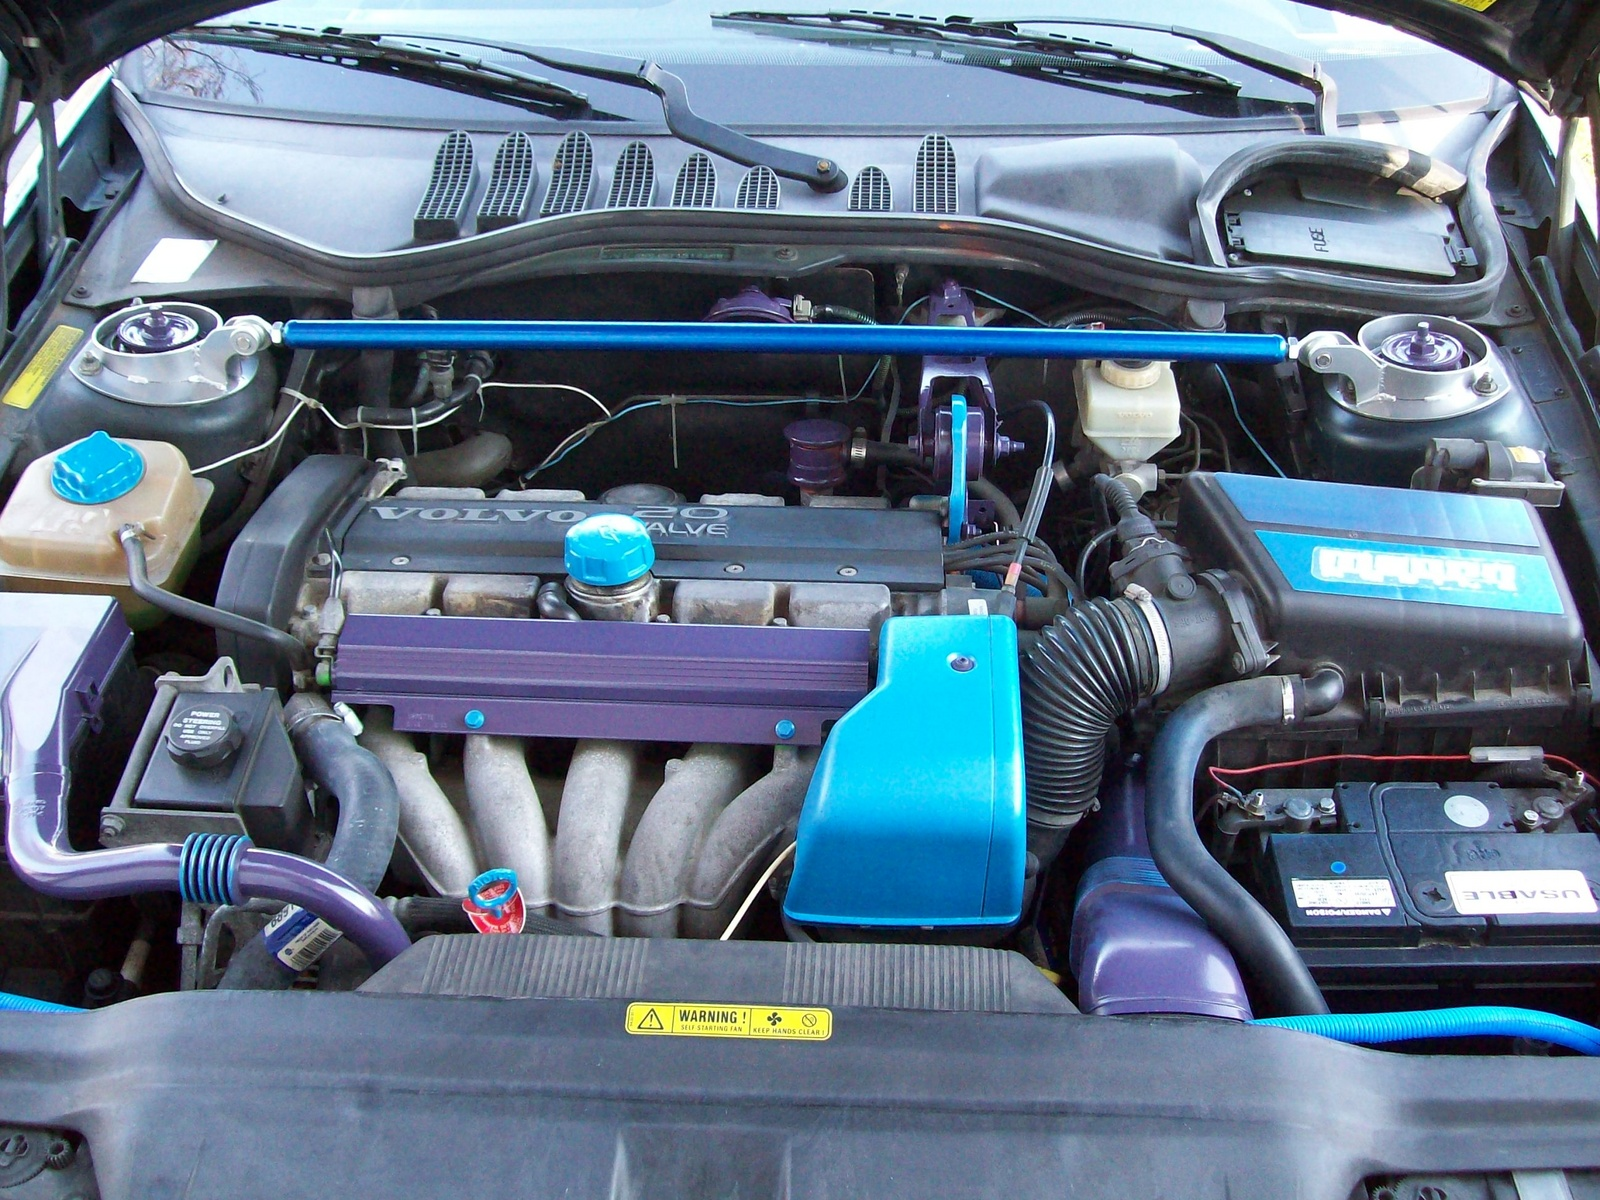 Volvo 850 engine #4